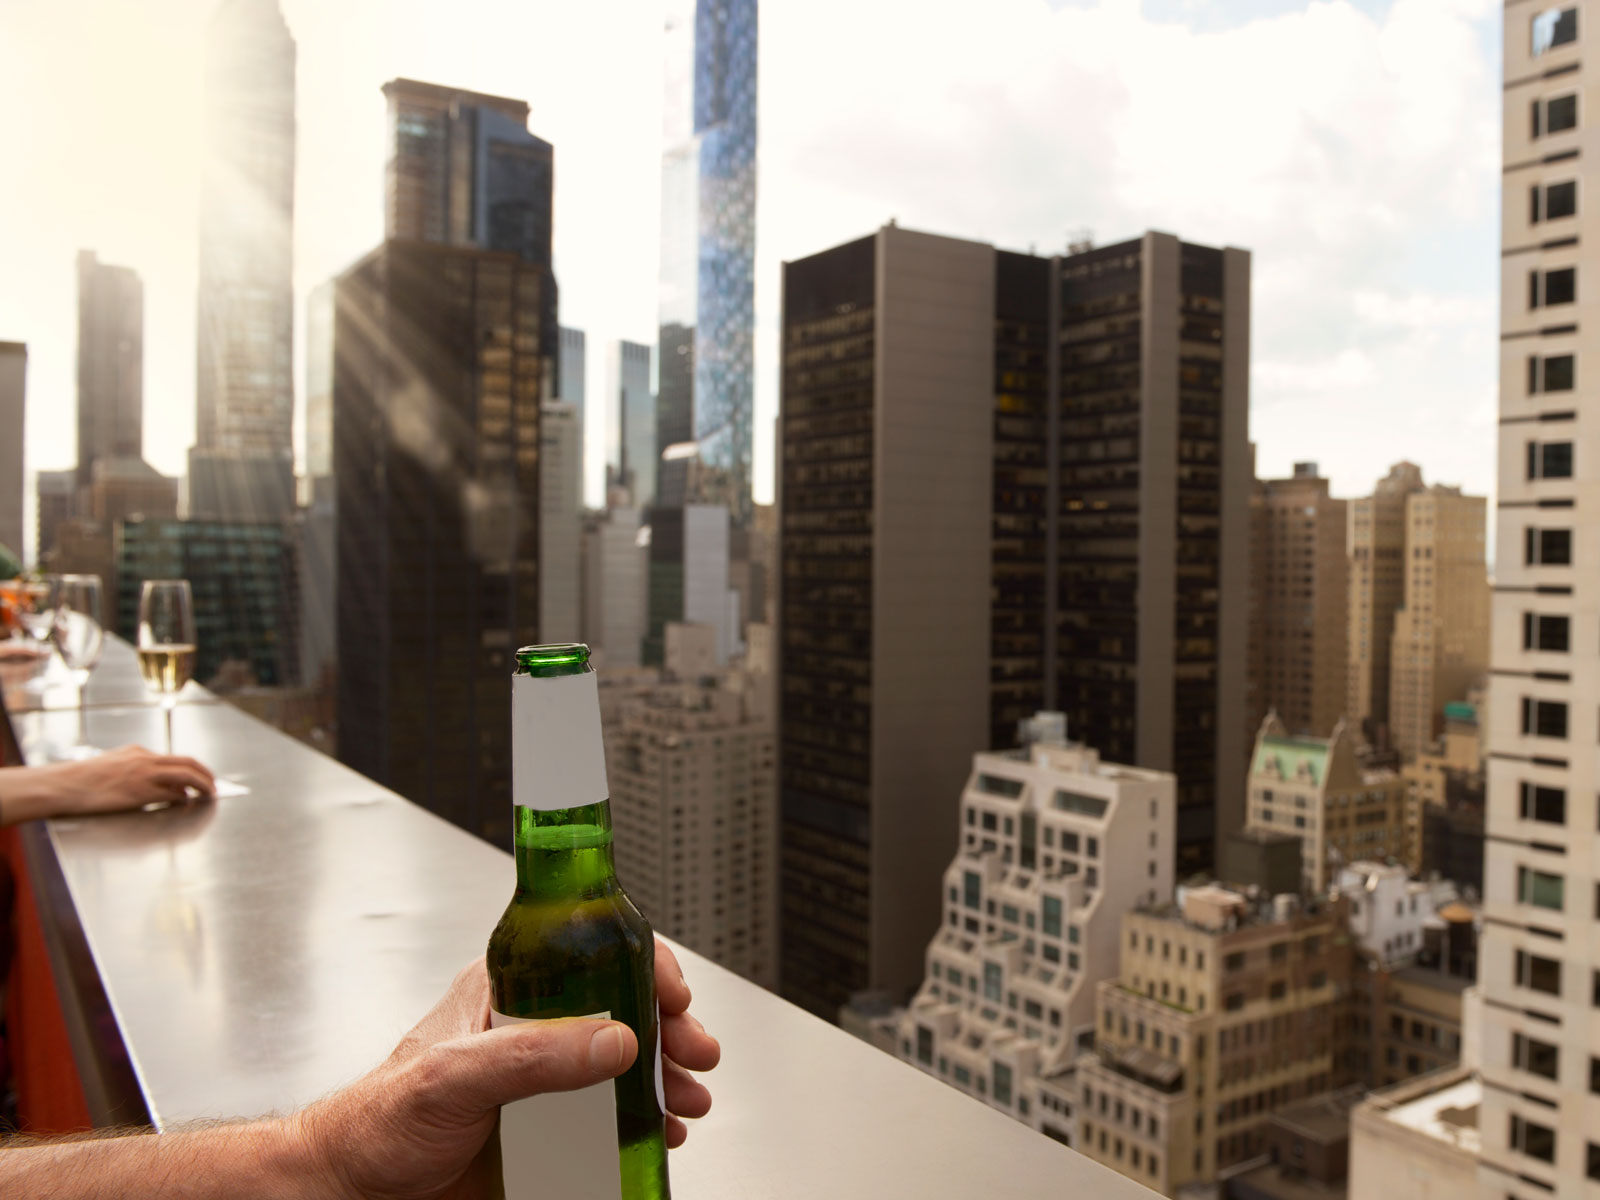 beer-price-expensive-cities-FT-BLOG0319.jpg